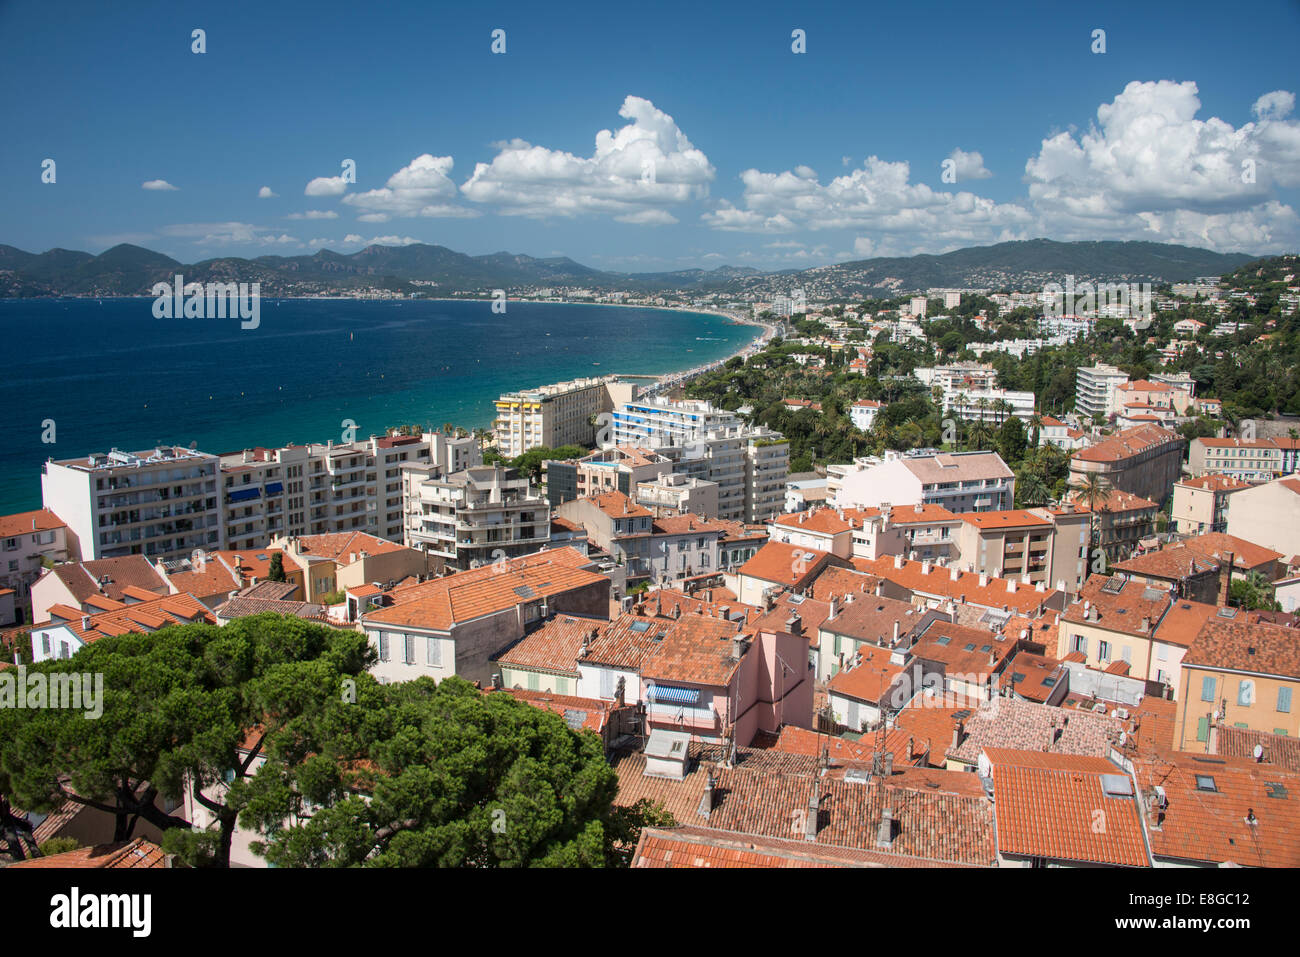 View from above of city of Cannes site of Film Festival on the Mediterranean Coast of the French Riviera South of - Stock Image